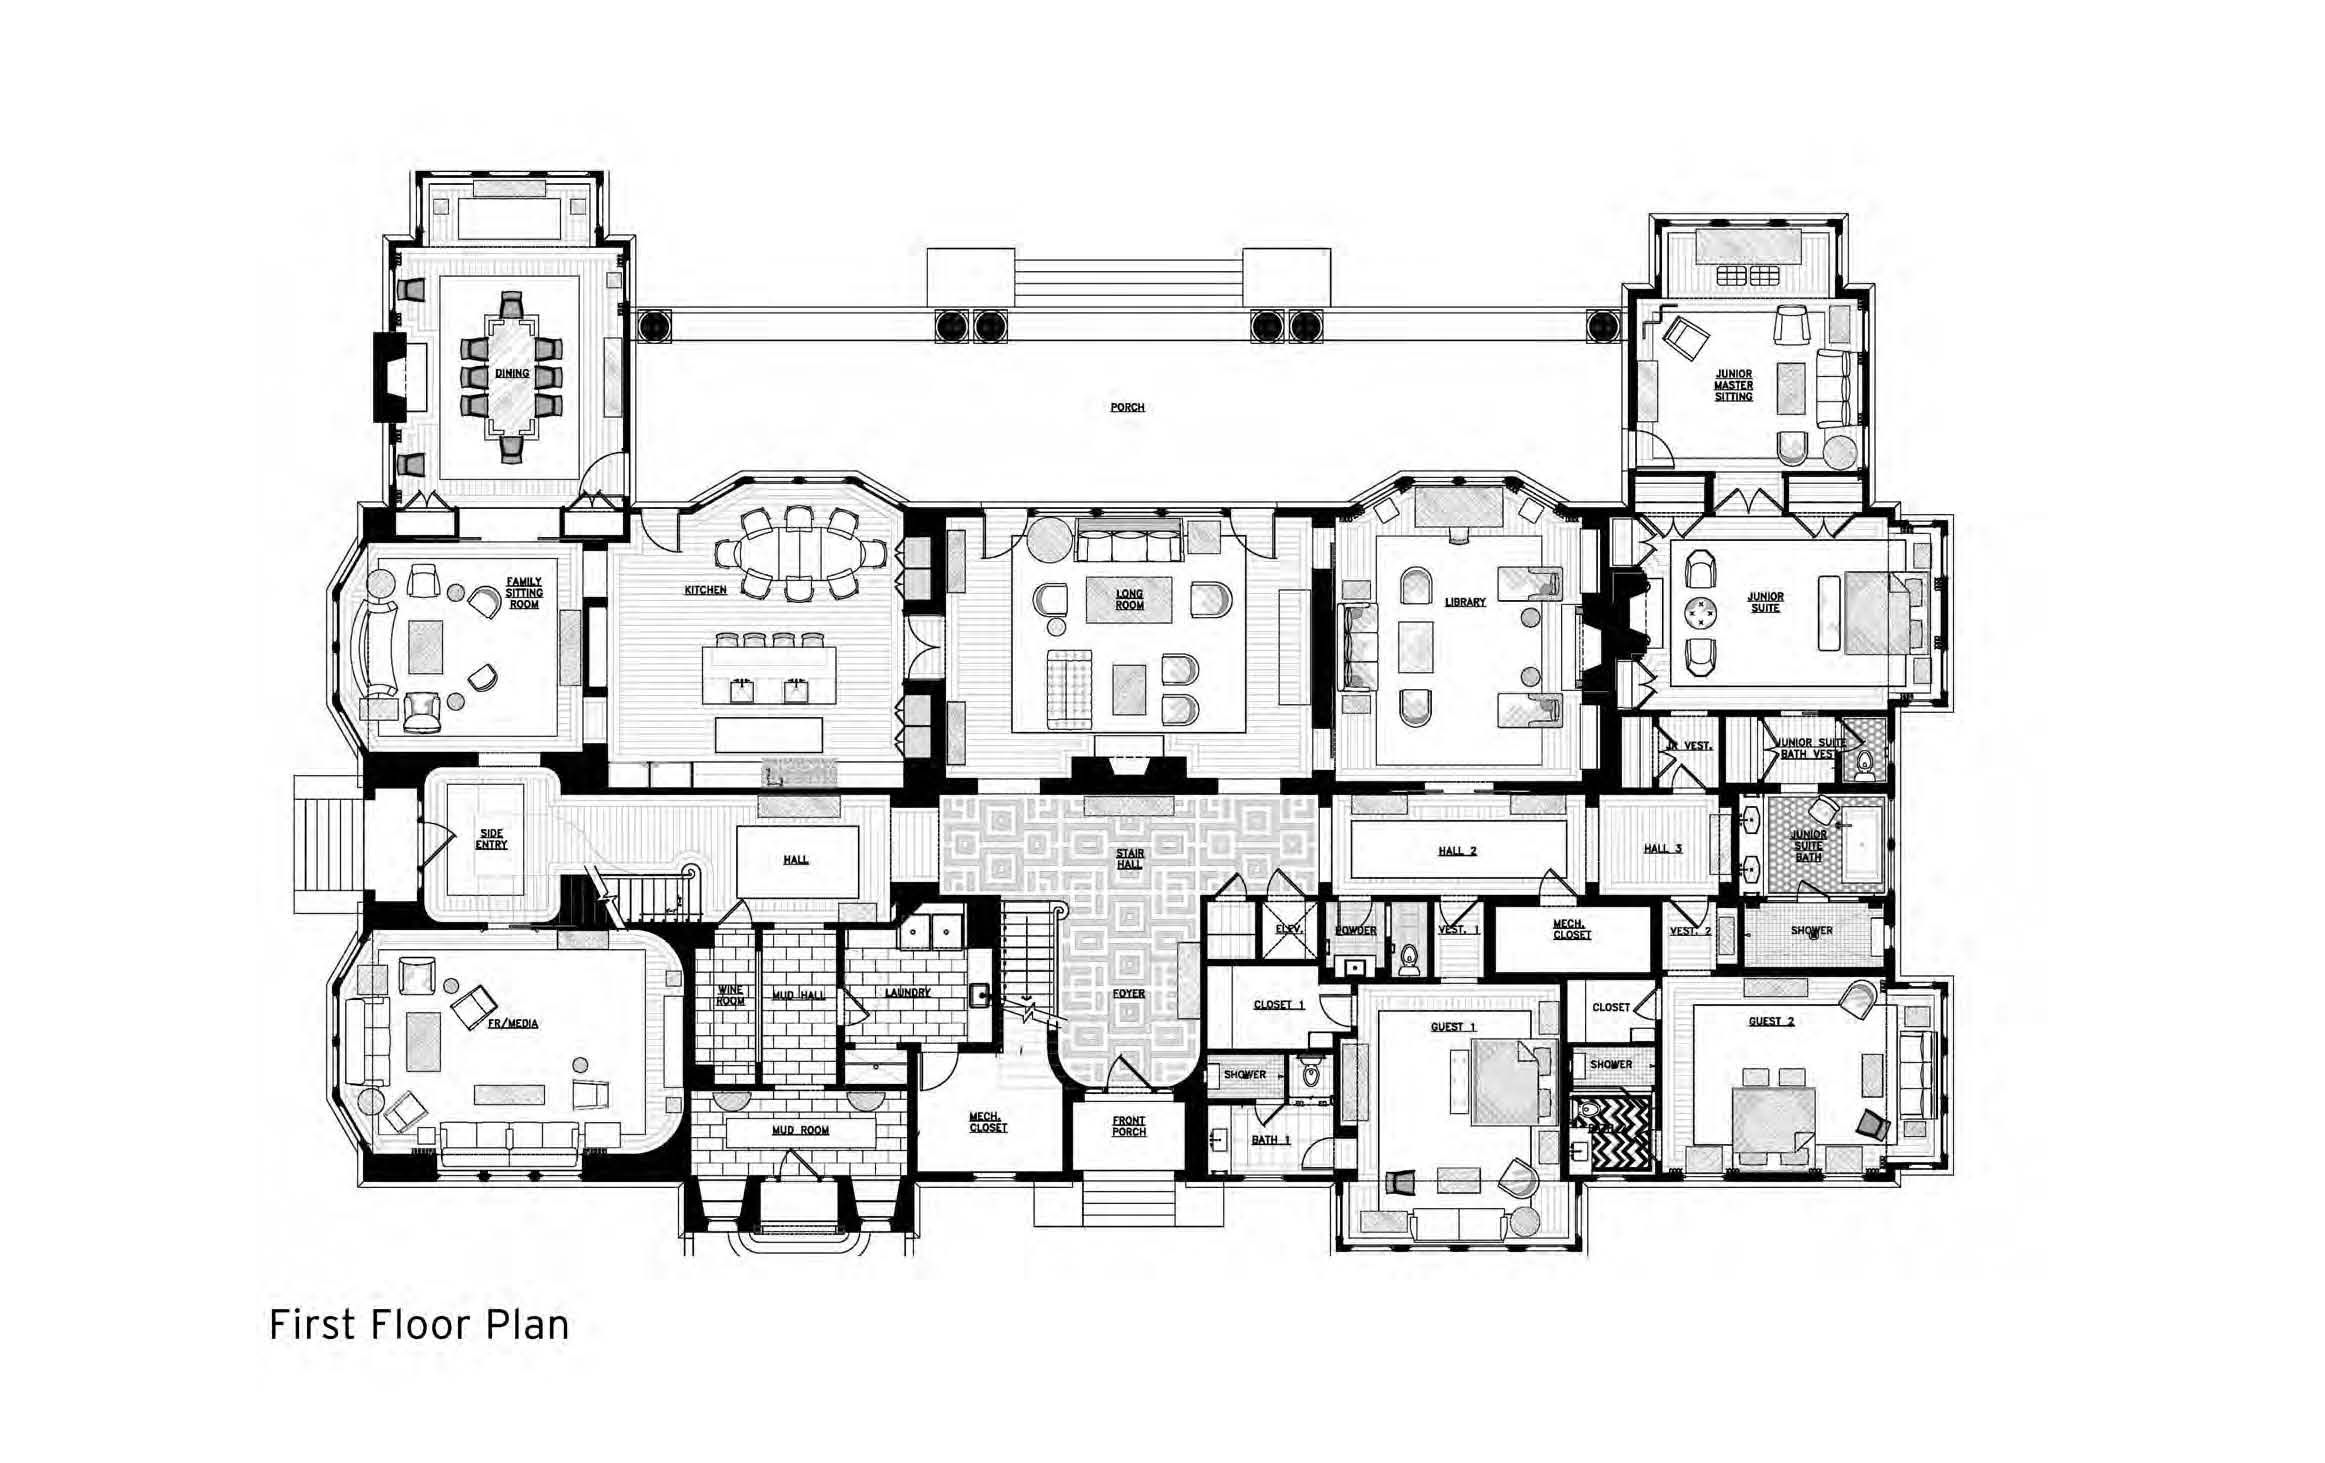 16b0987598b73e28fa7e6e434287f6e8 jpg 2325 1463 floor plans real estate